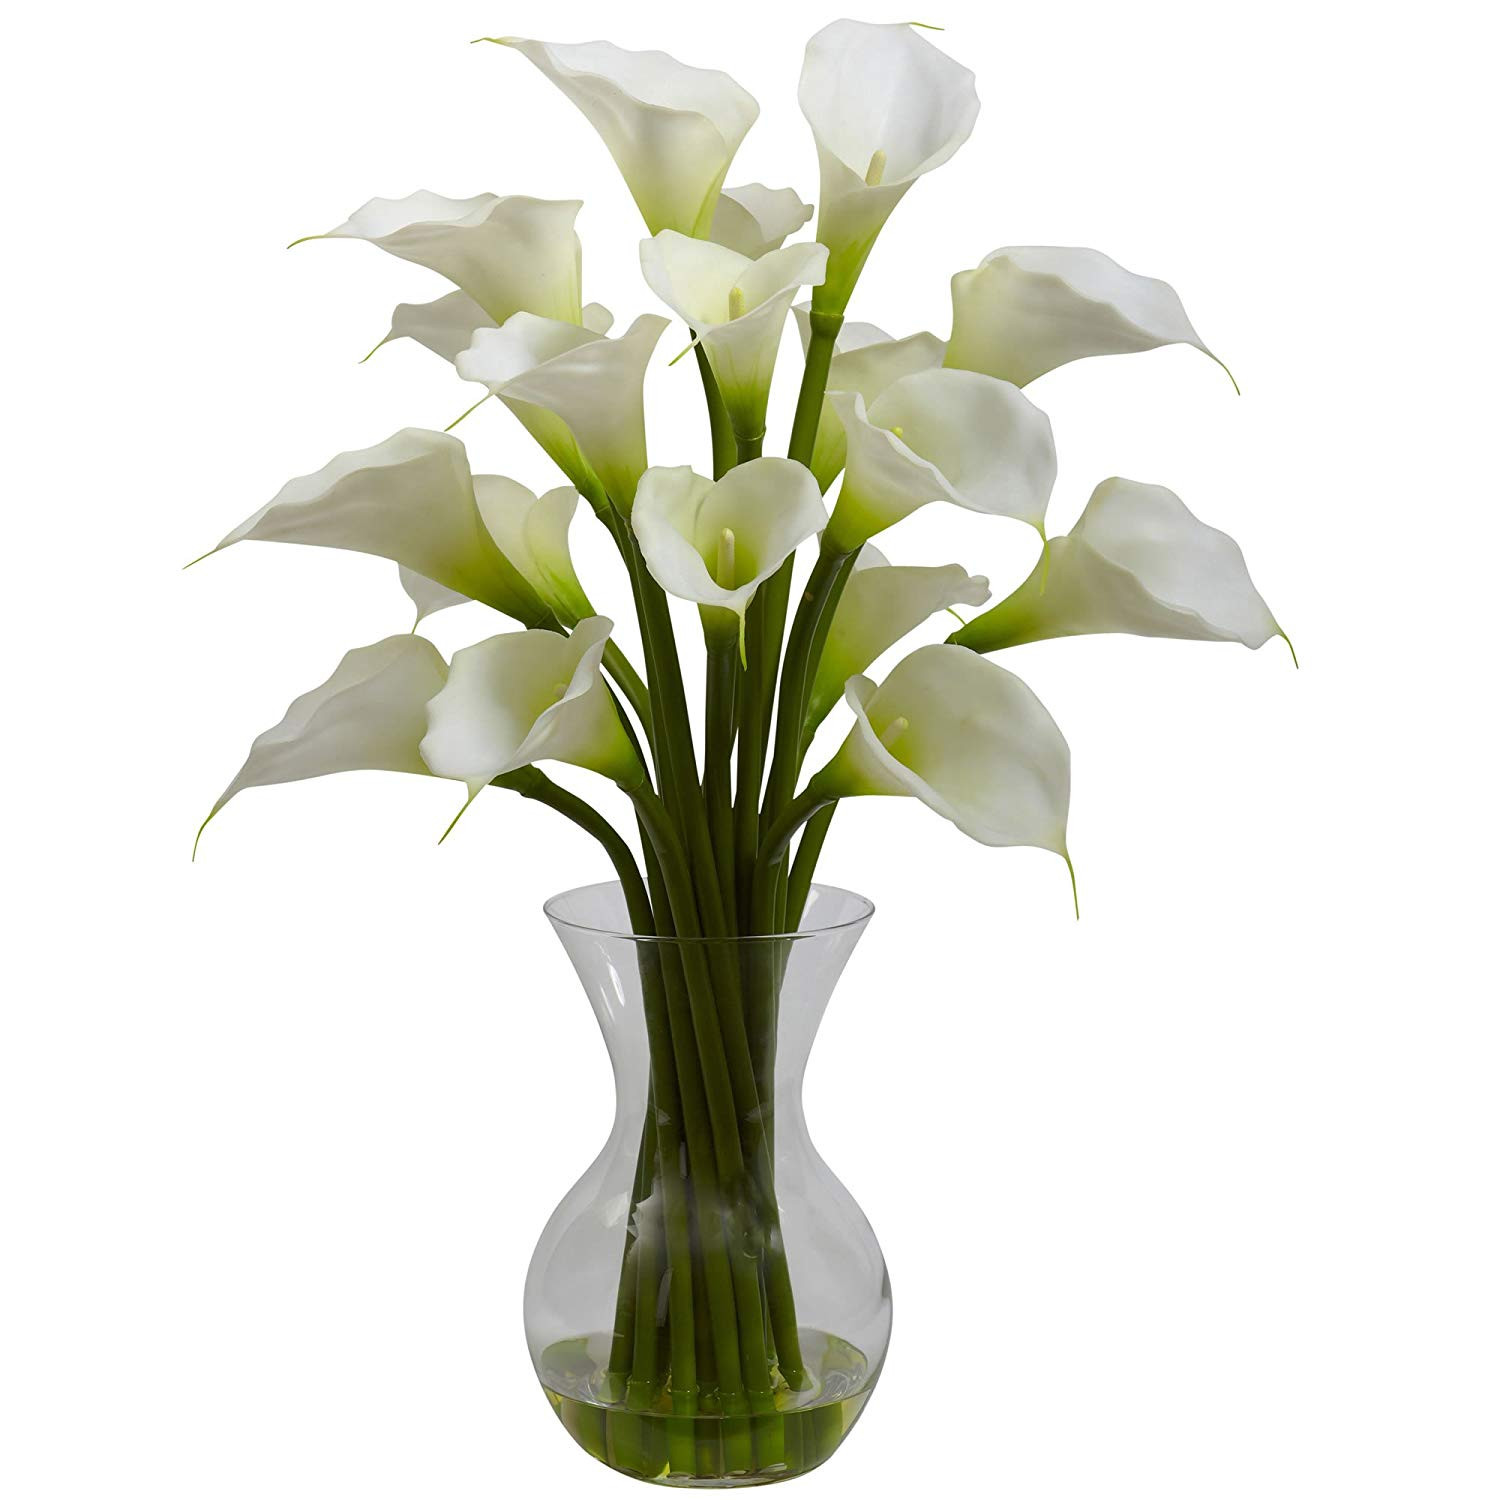 Natural Stone Ikebana Vases Of Amazon Com Nearly Natural 1299 Cr Galla Calla Lily with Vase with Regard to Amazon Com Nearly Natural 1299 Cr Galla Calla Lily with Vase Arrangement Cream Home Kitchen